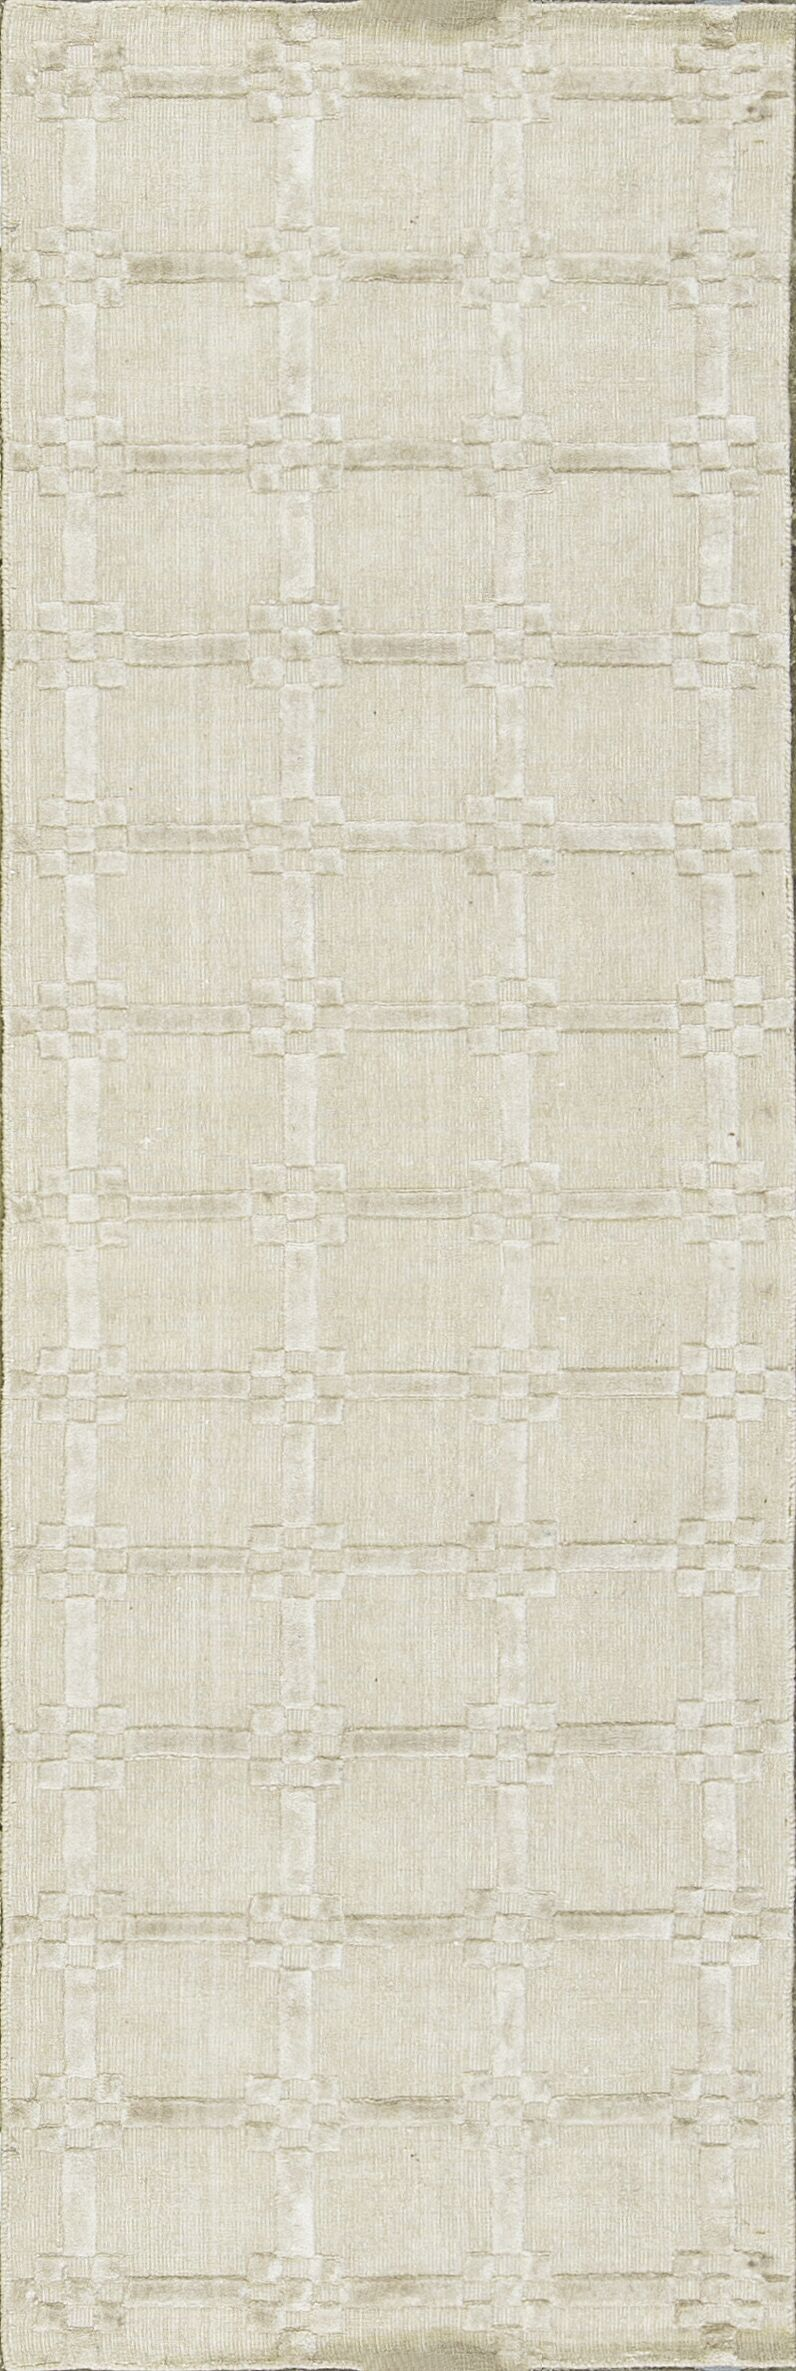 One-of-a-Kind Hand-Knotted Beige Indoor Area Rug